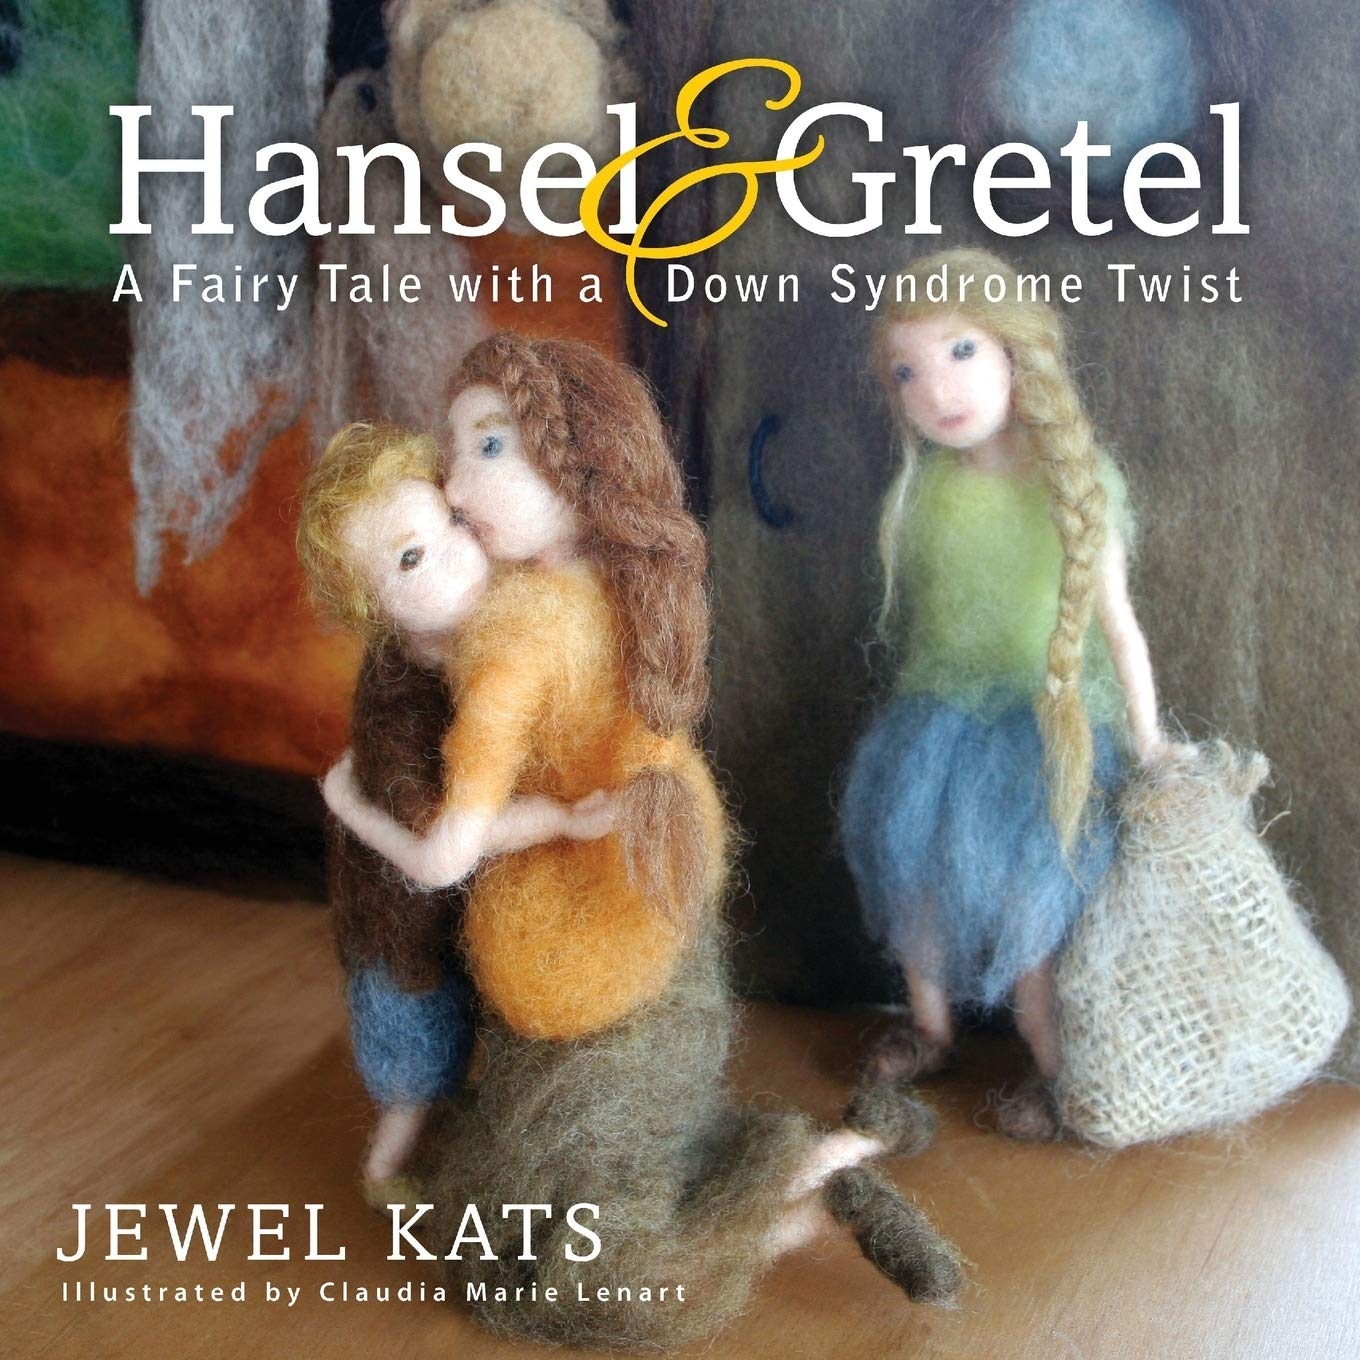 Hansel And Gretel A Fairy Tale With A Down Syndrome Twist Fairy Ability Tales Kats Jewel Lenart Claudia Marie 9781615992508 Amazon Com Books The above chart shows twist.moe server status over the last 24 hours automatic checks. hansel and gretel a fairy tale with a